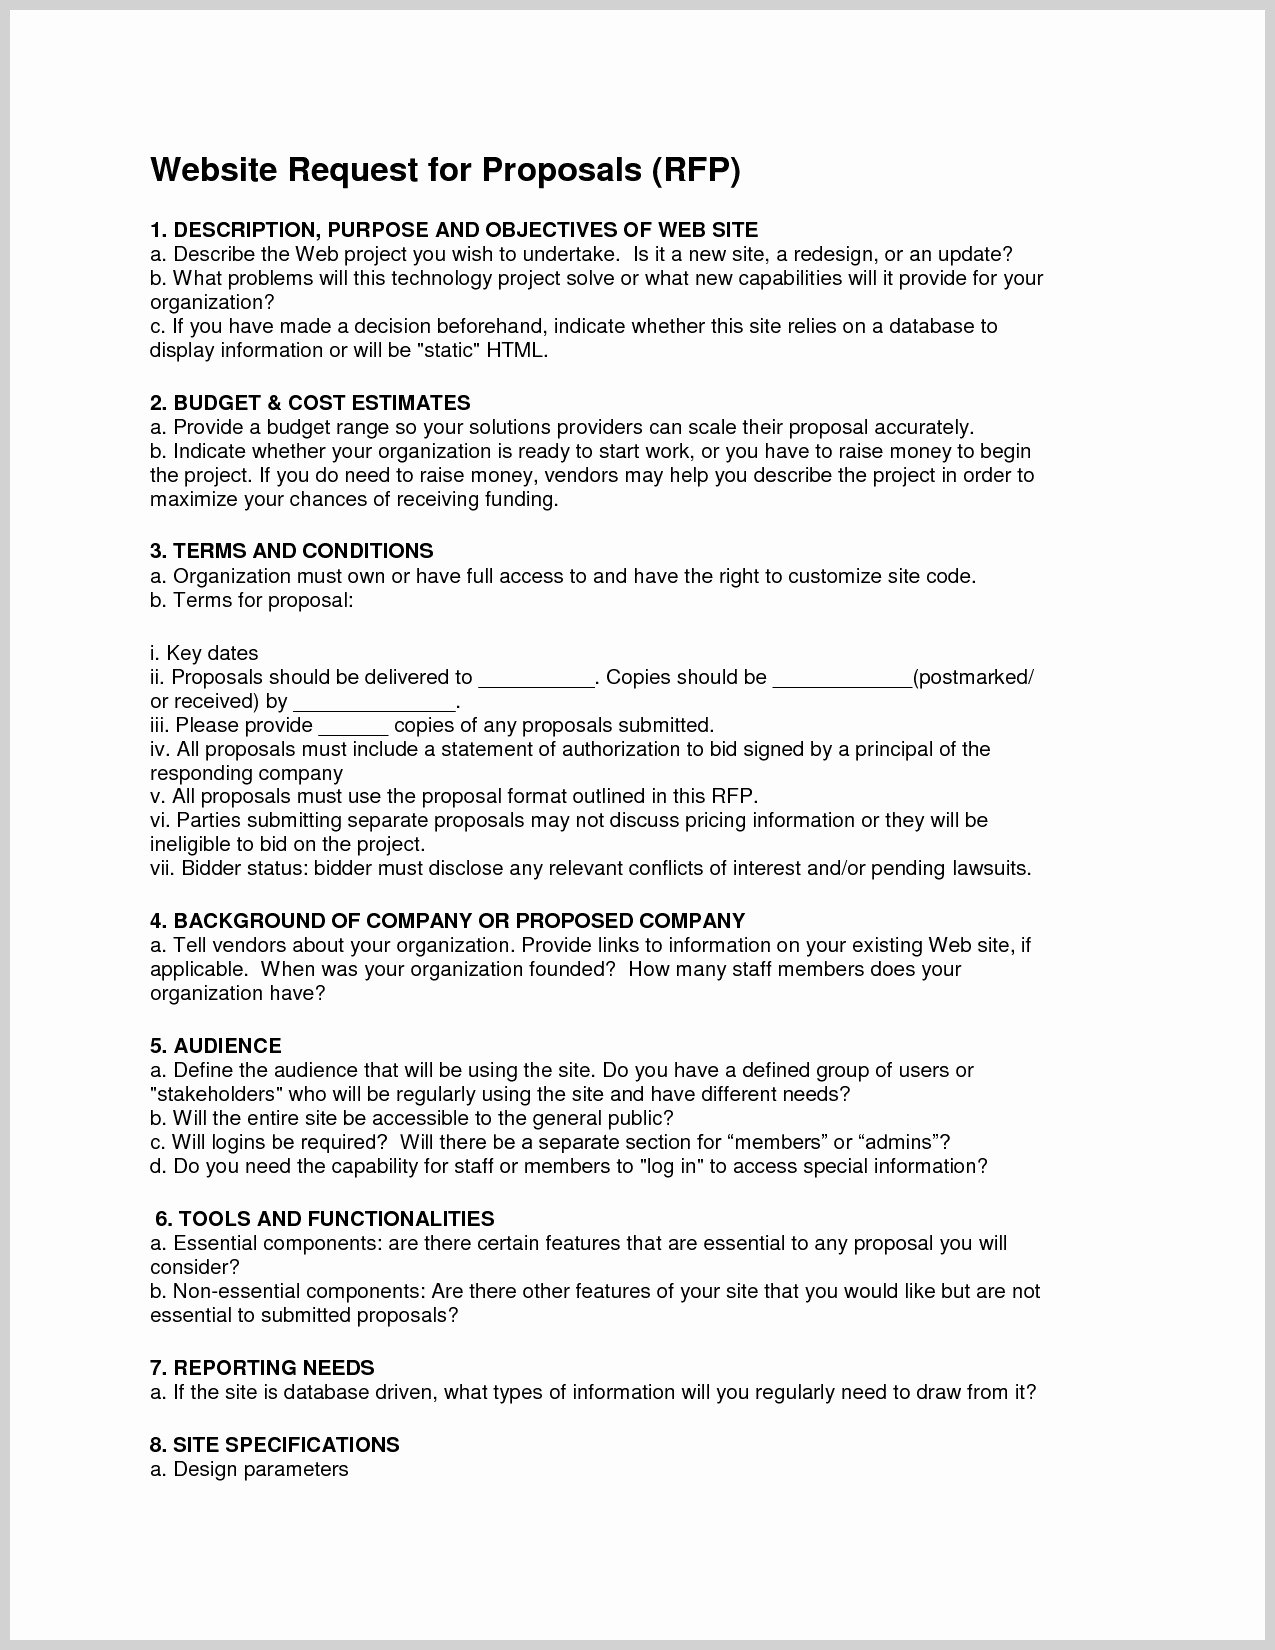 Request for Proposal Template Word Awesome Appealing Sample Rfp Template Resume Ideas